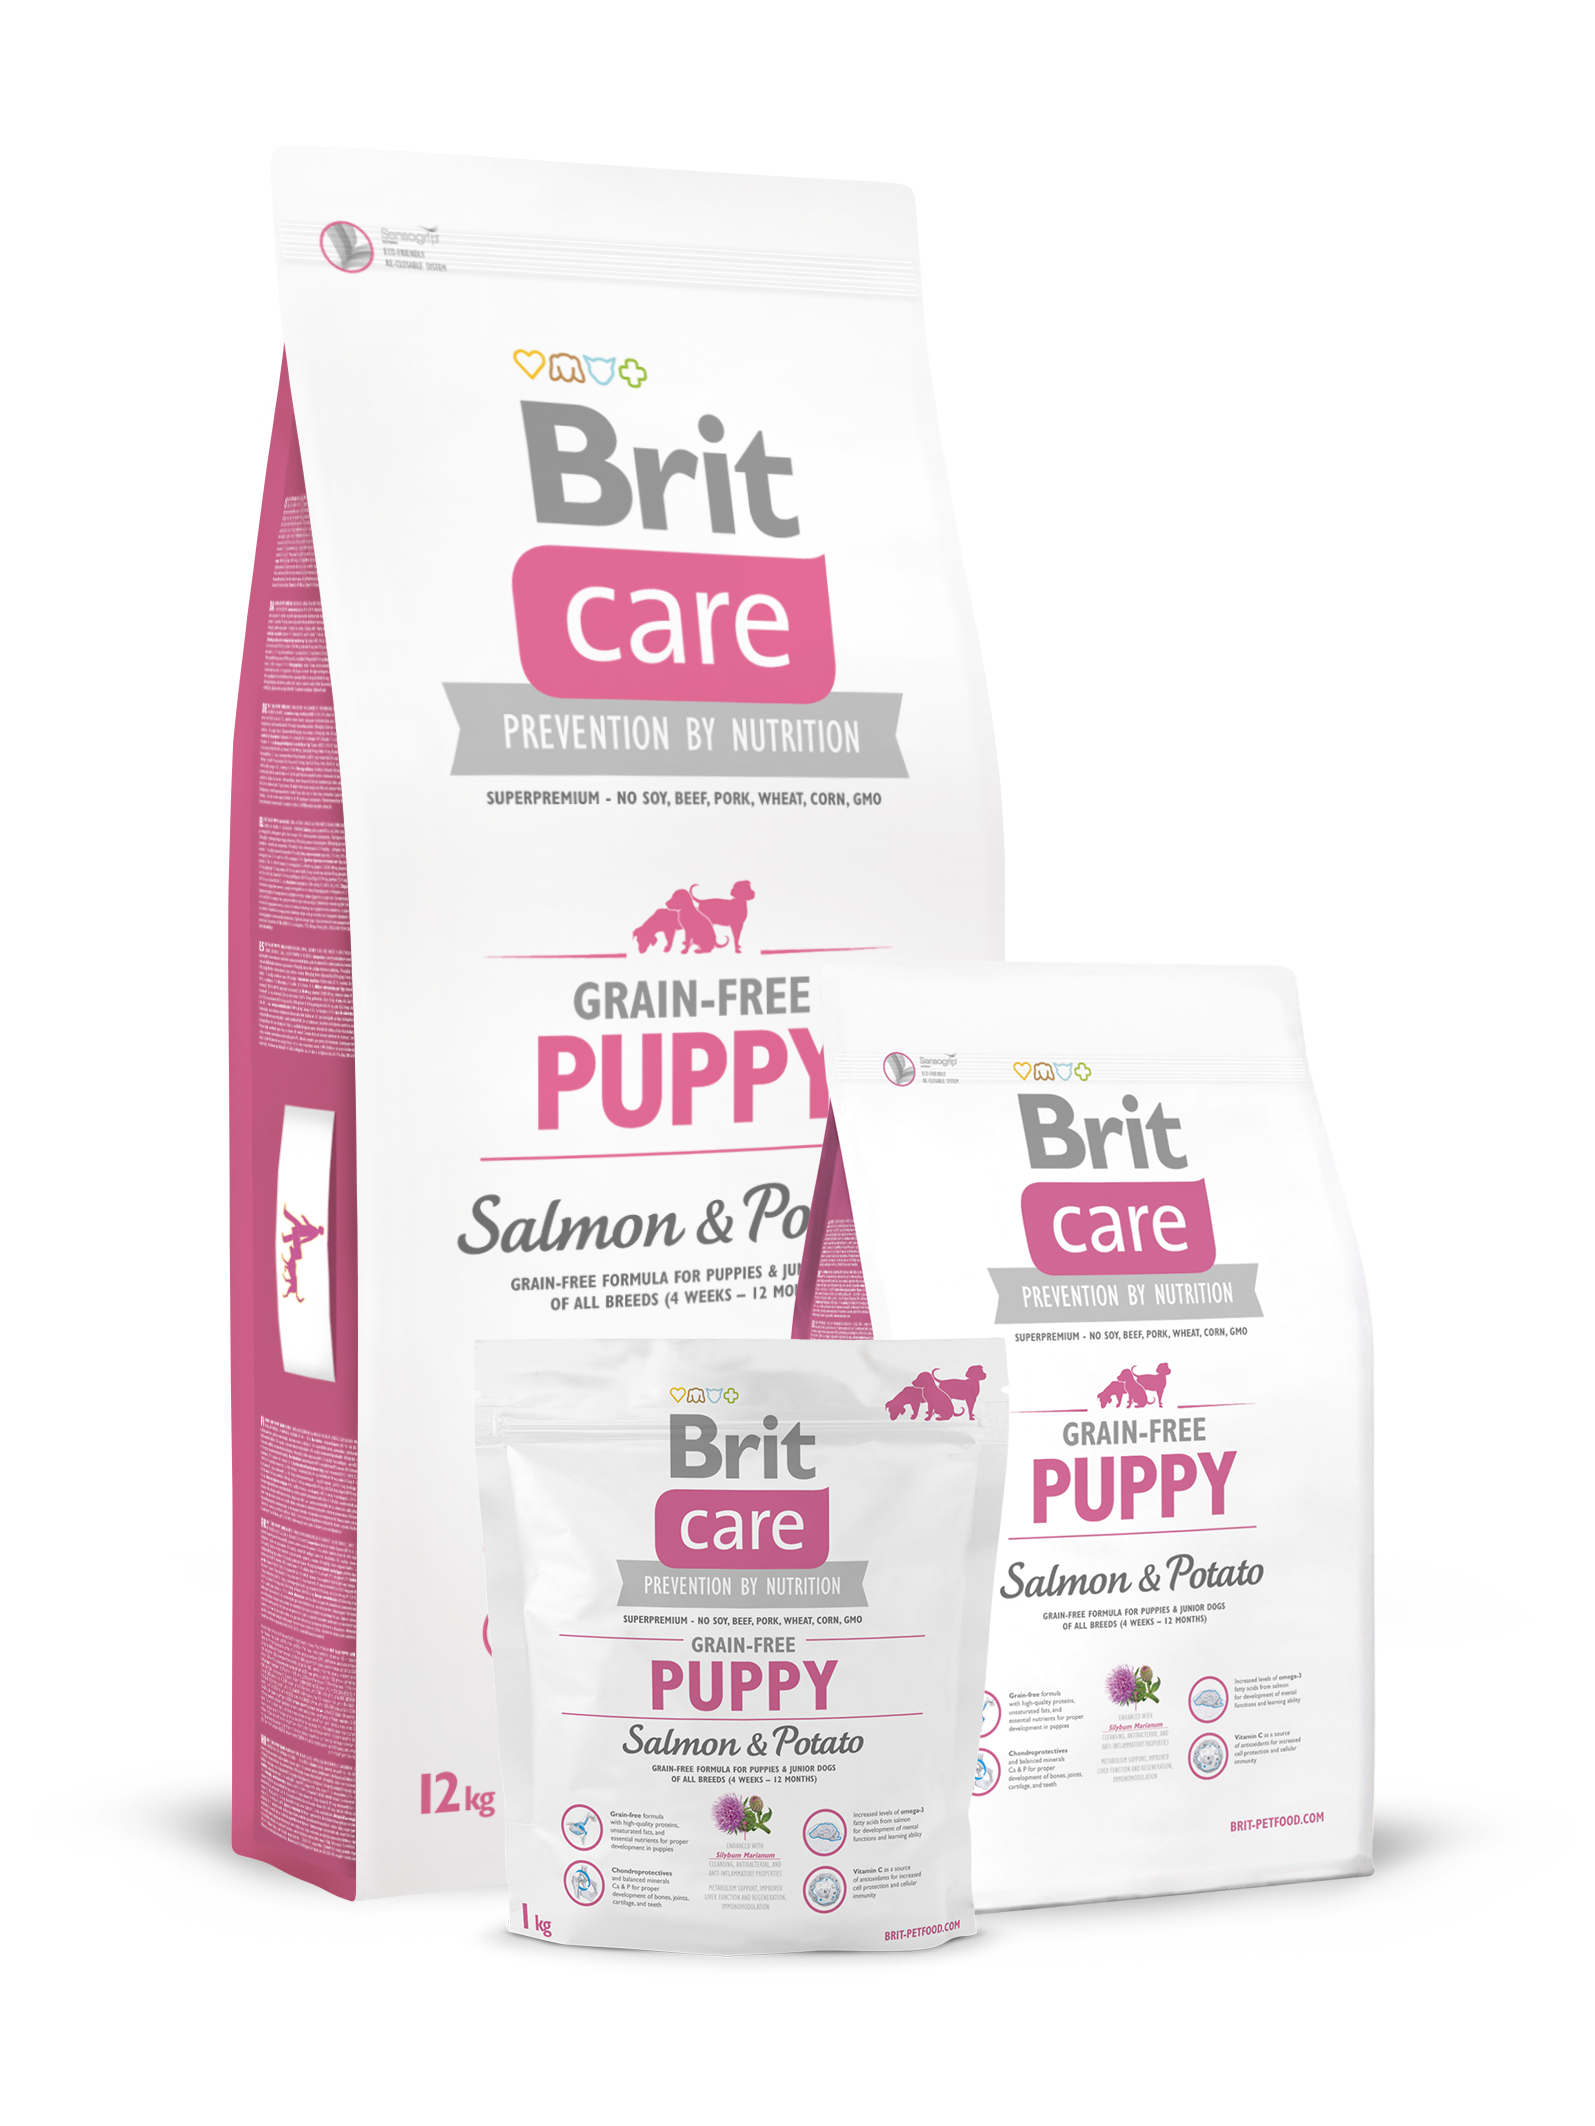 Brit Care Grain-free Puppy Salmon & Potato 12 kg.